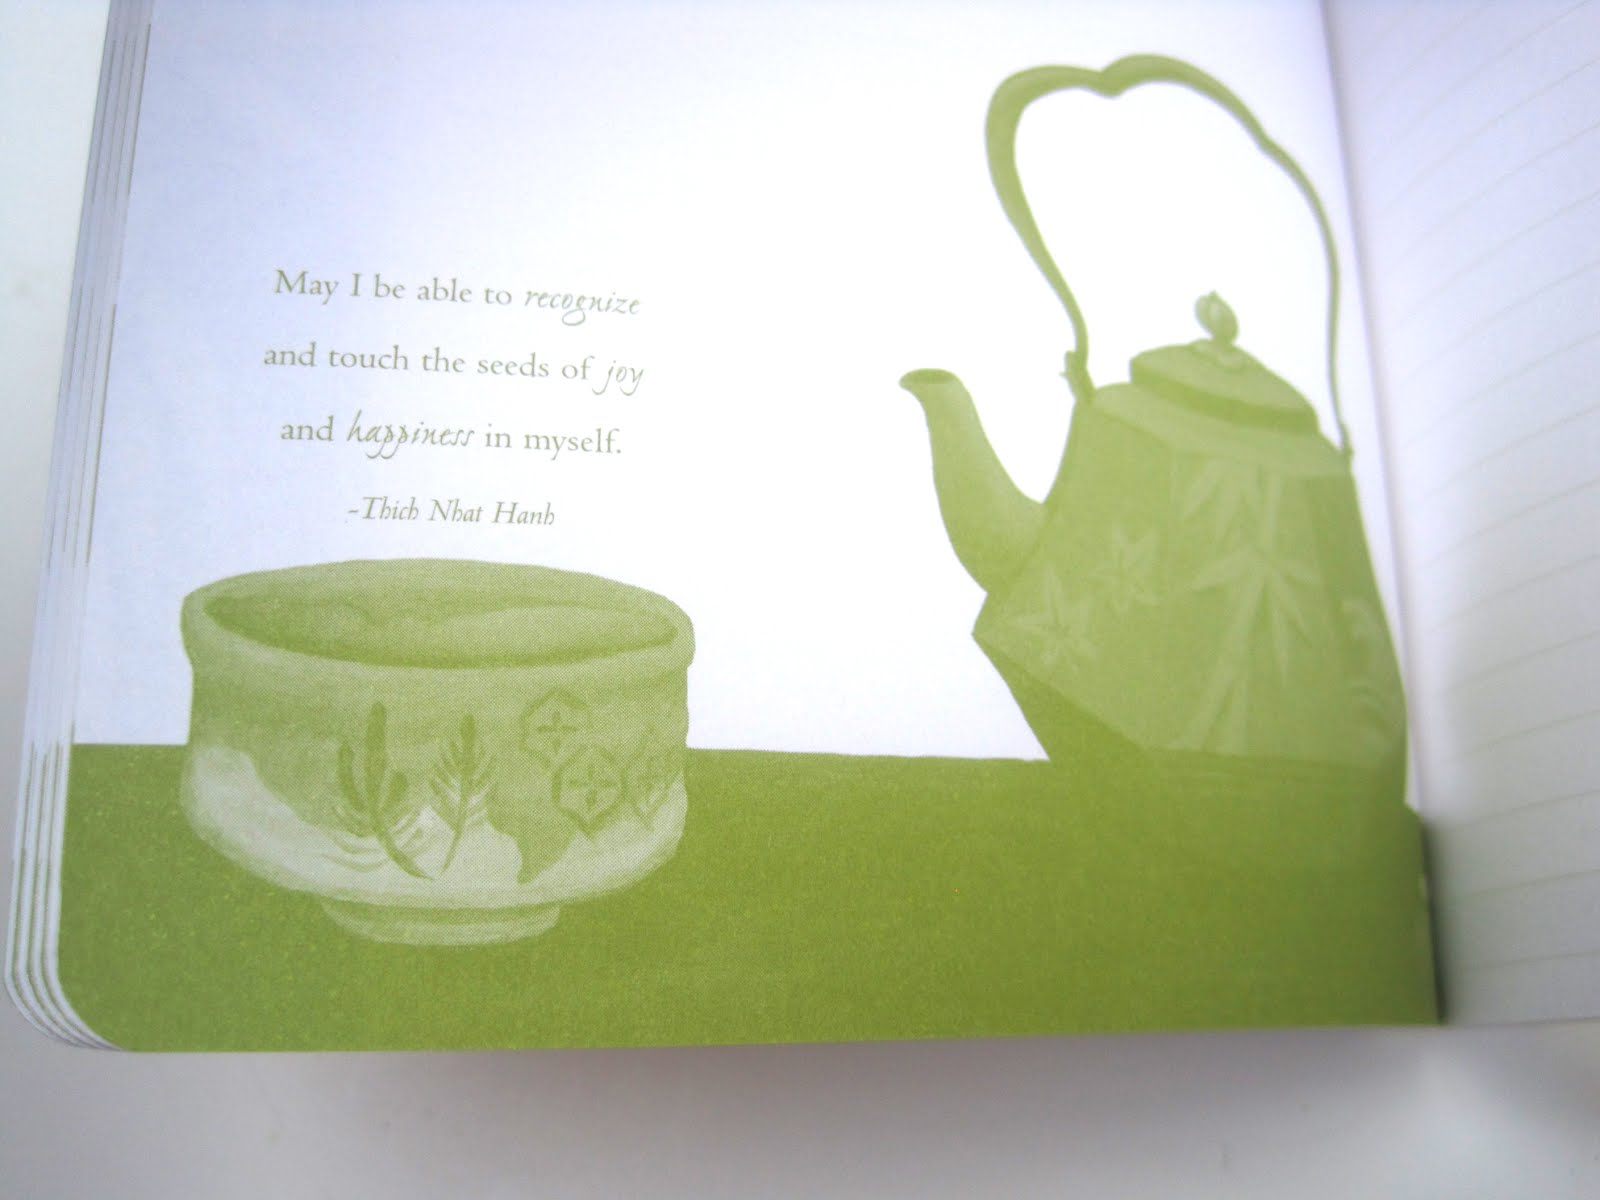 Quotes About Tea And Friendship Friendship Quotes About Tea Tea Time Quotes Quotesgram.